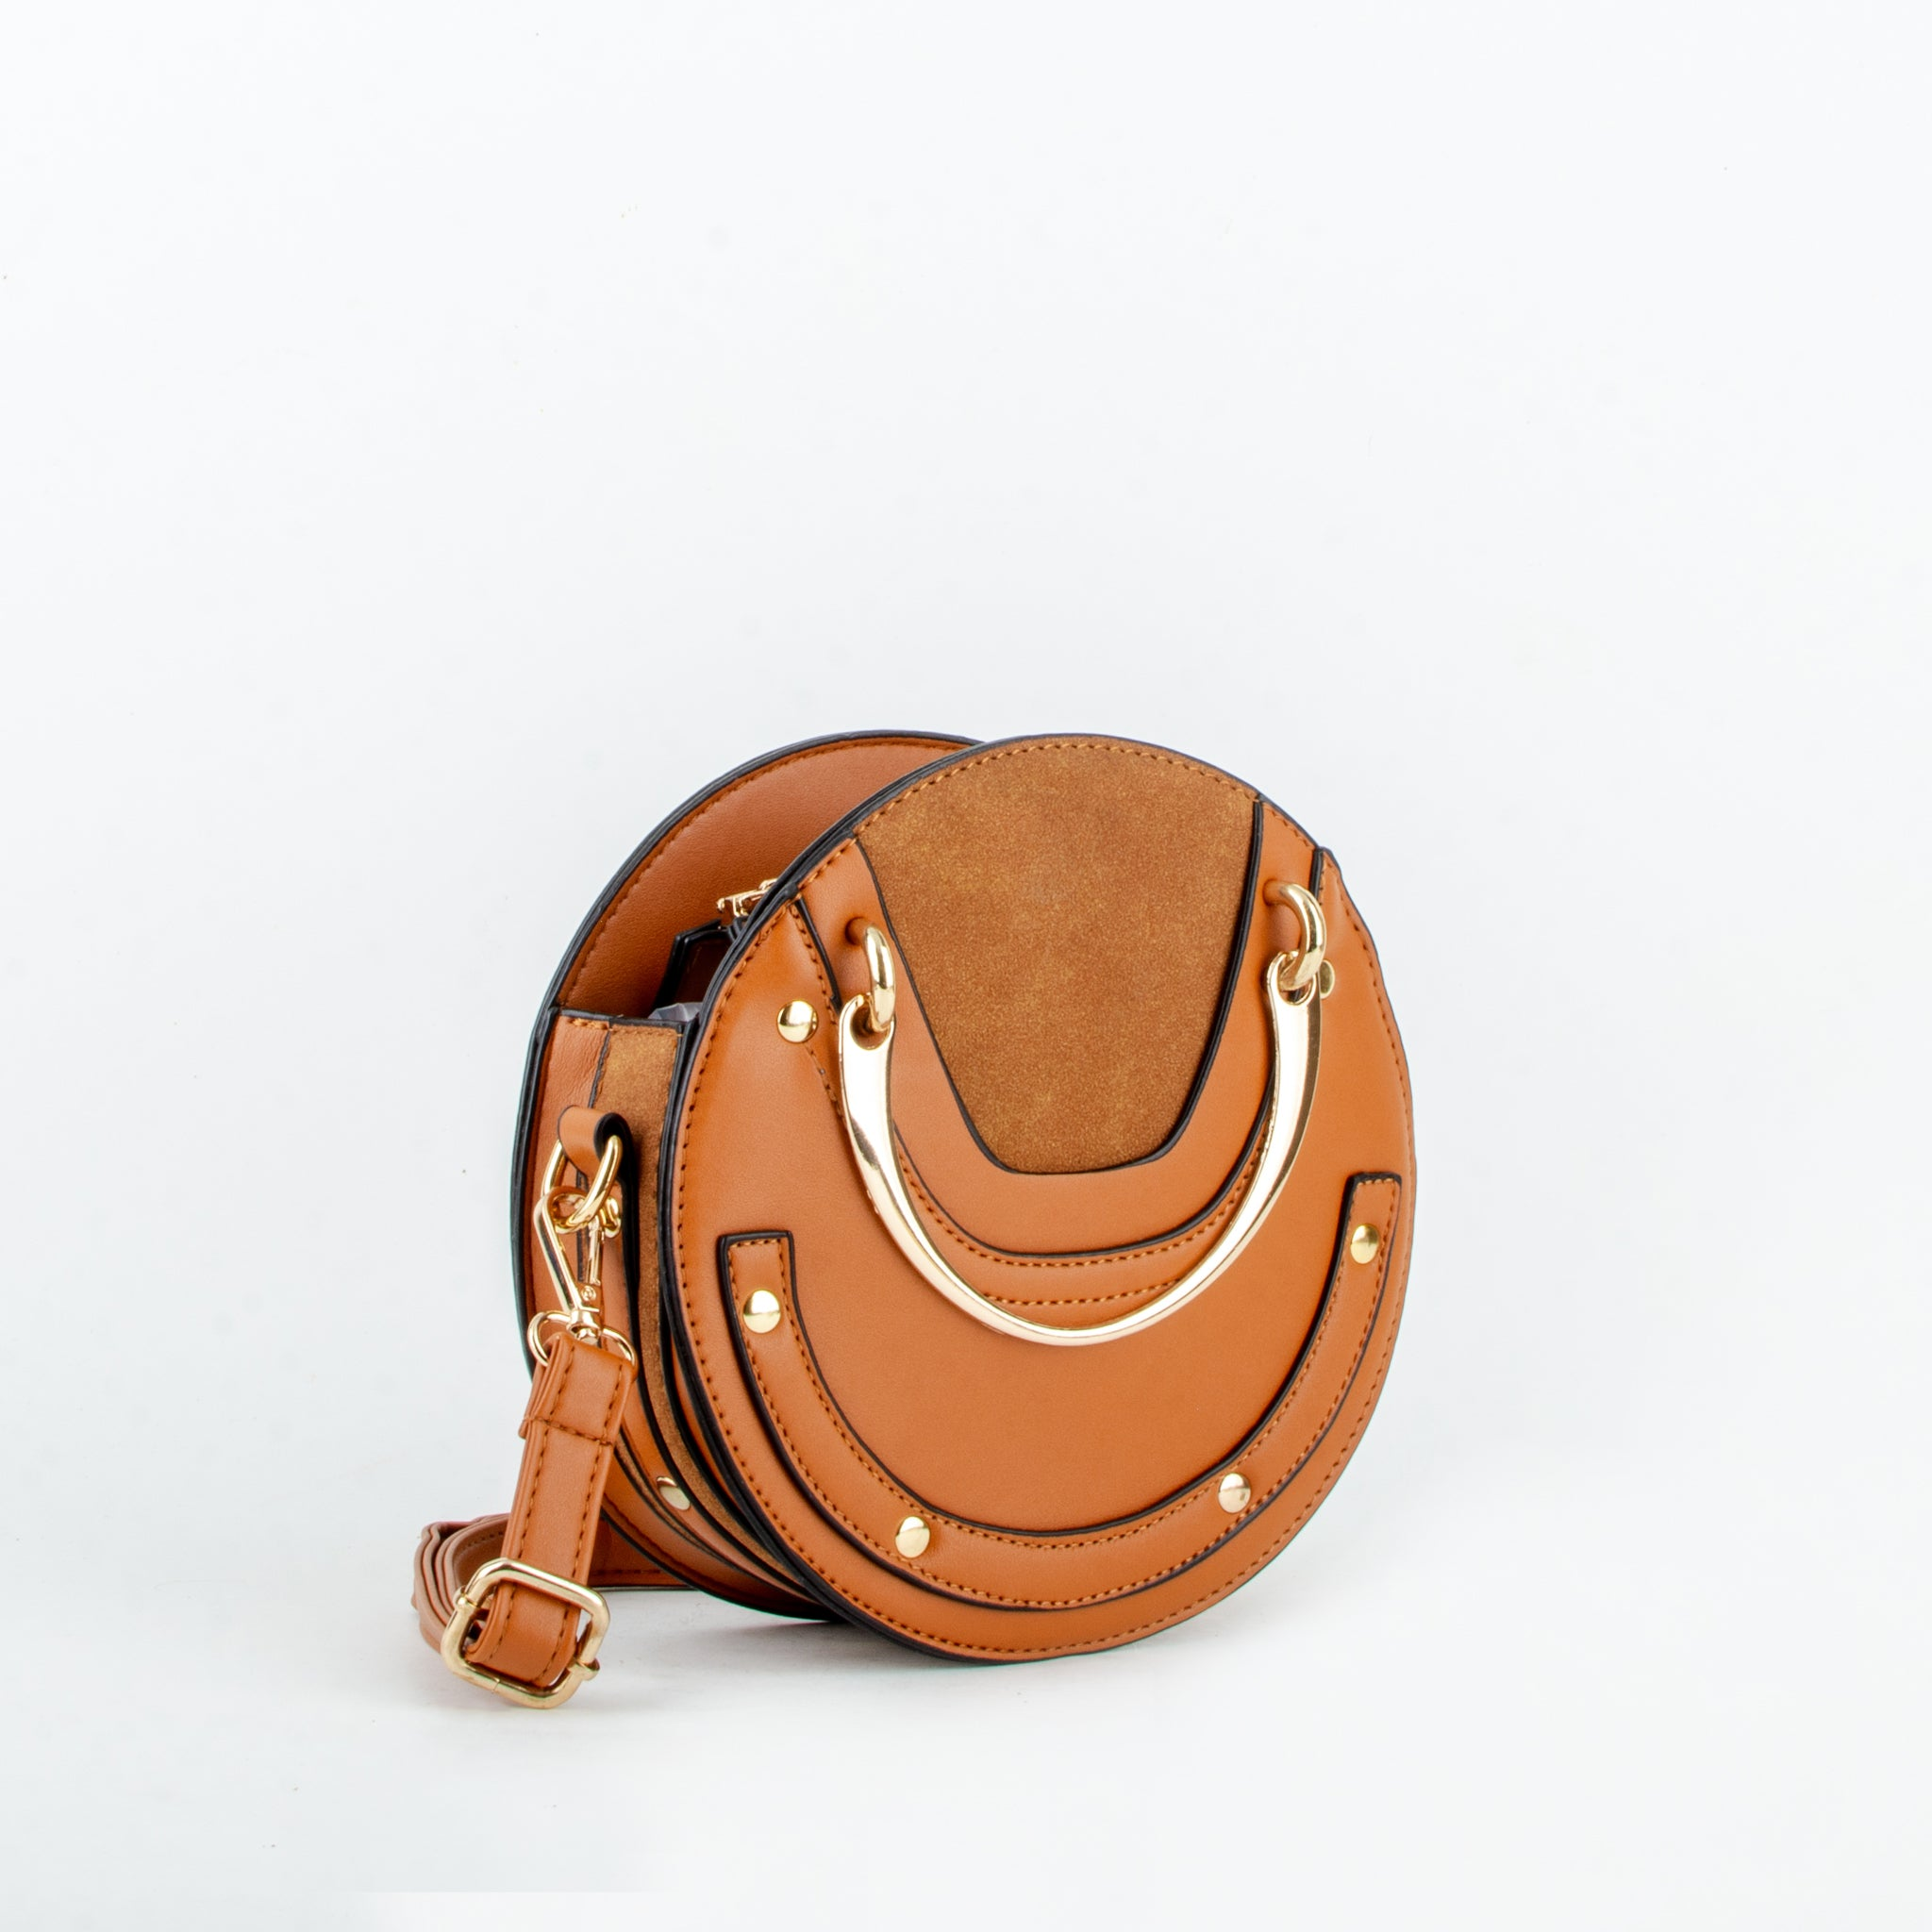 Pu leather Carla brown ecoego